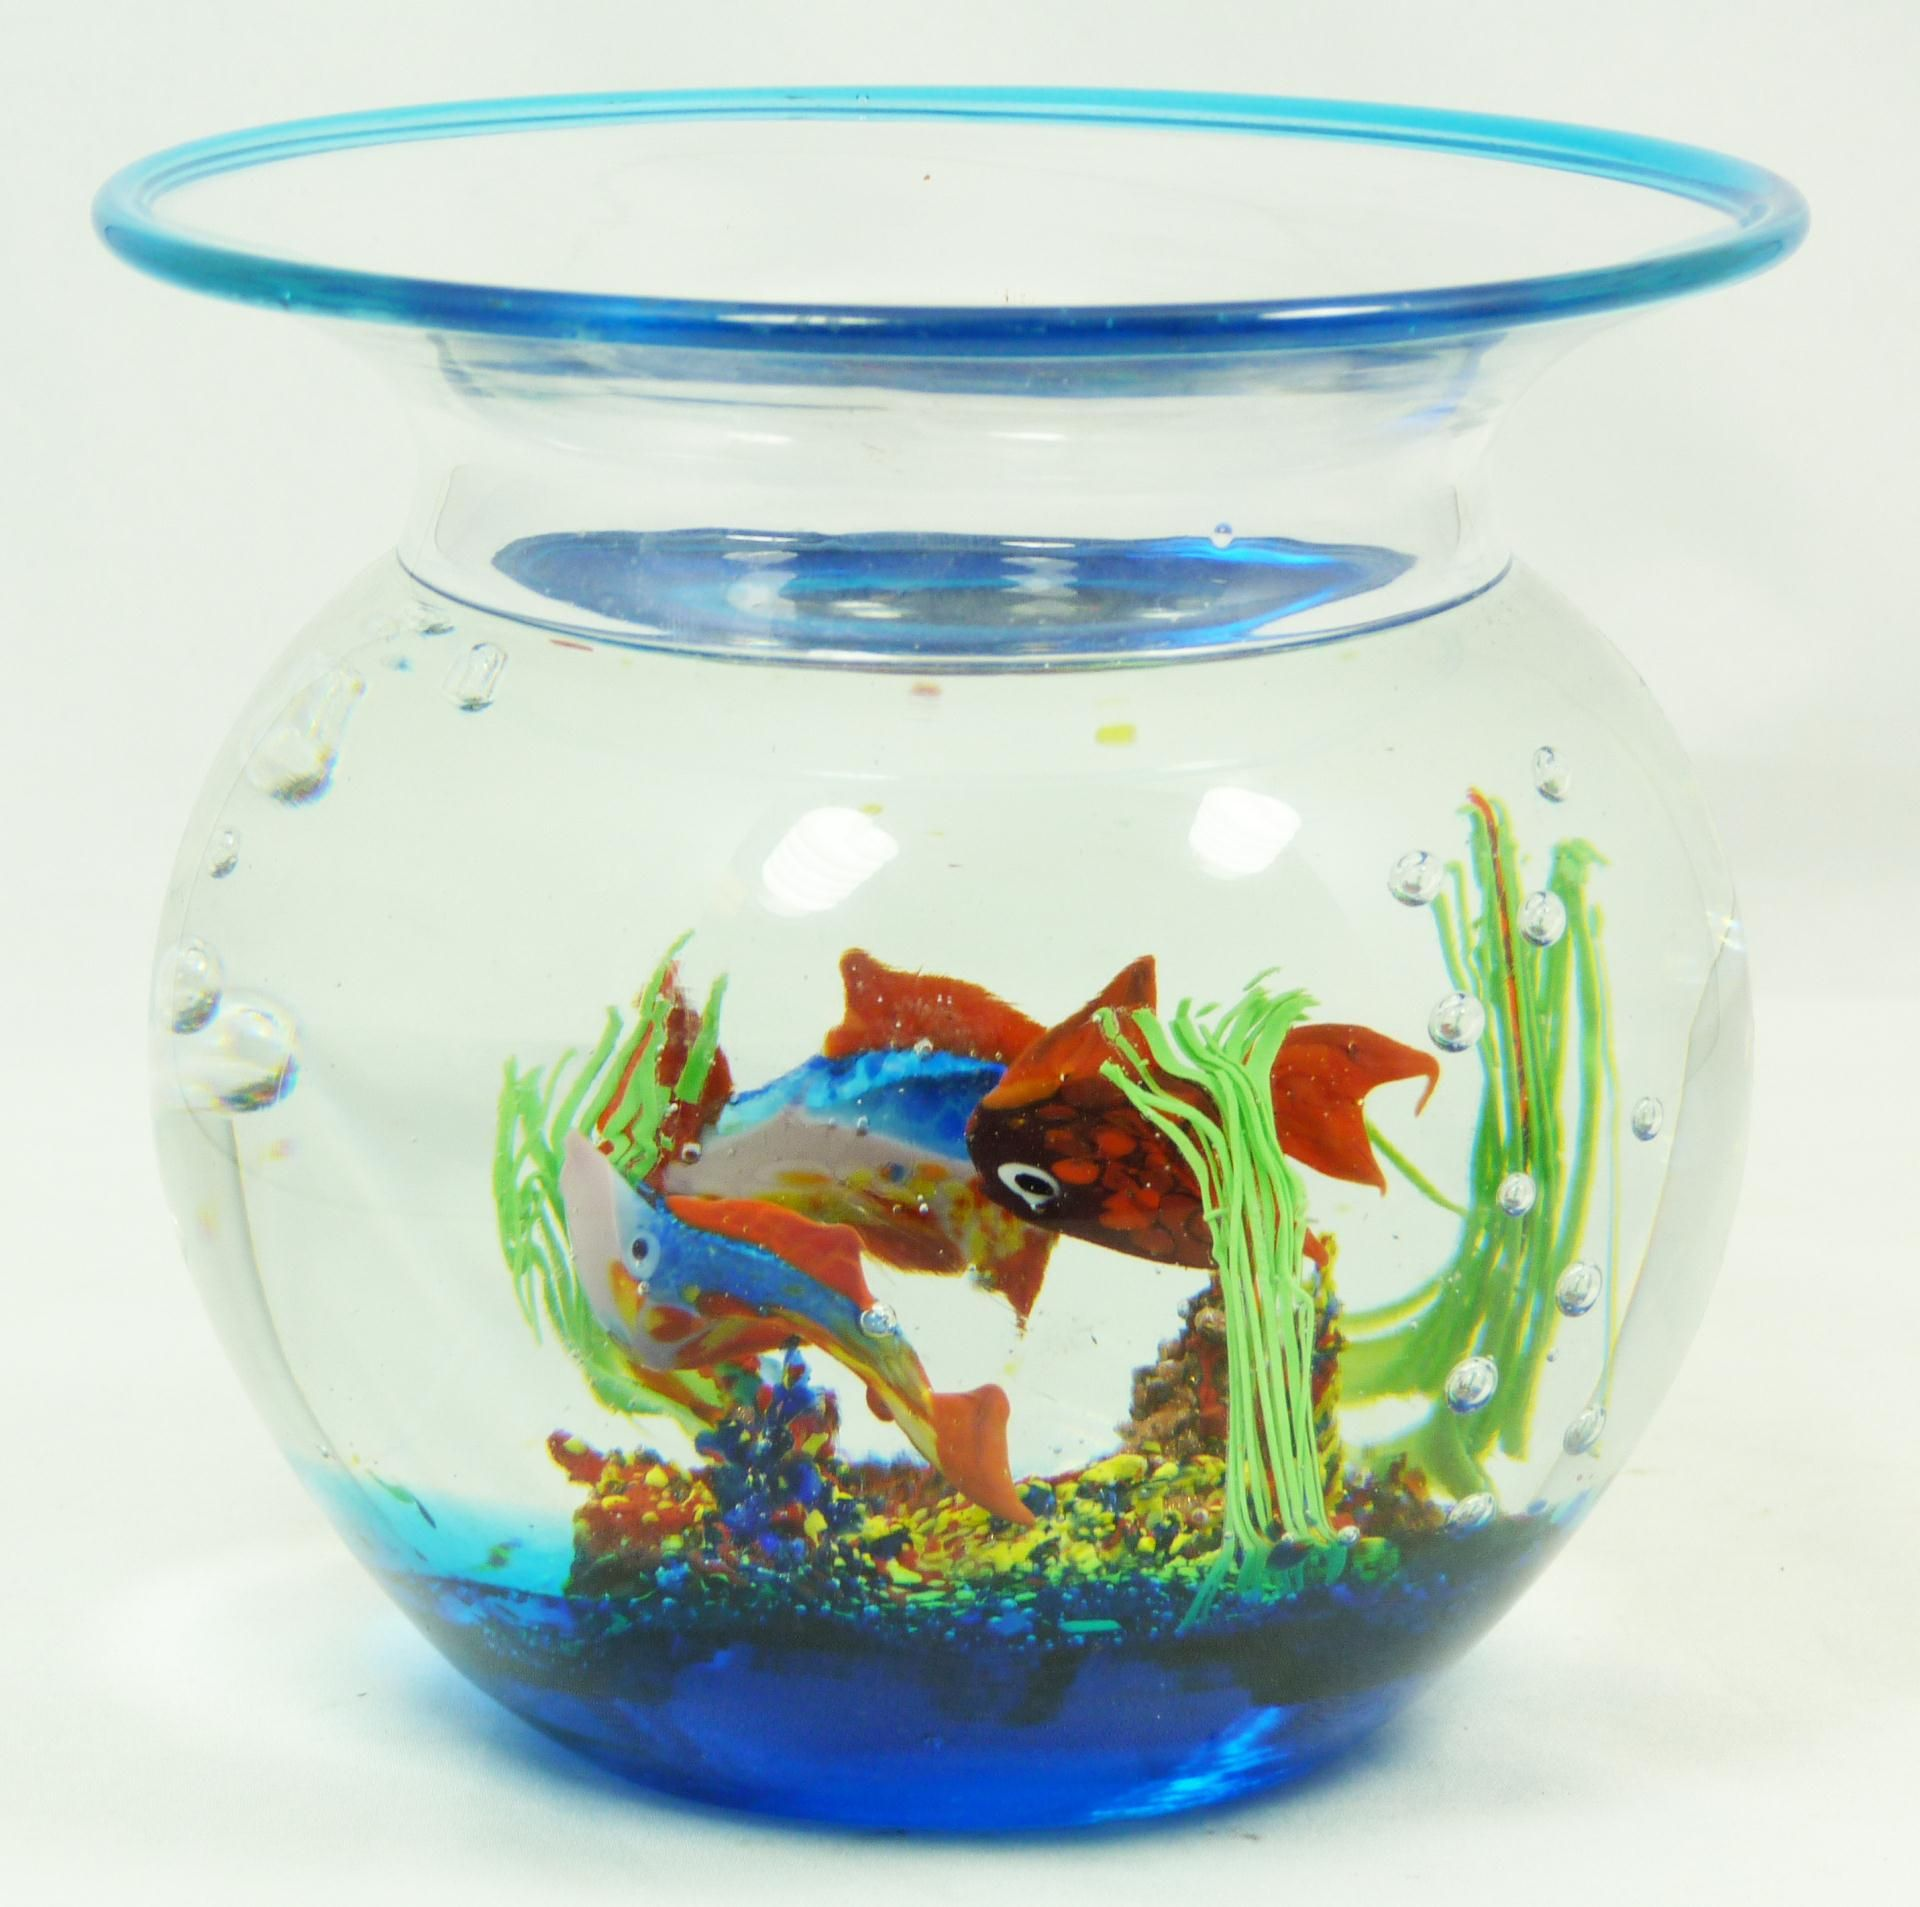 Glass fish bowl decorations the image for Fish bowl fish